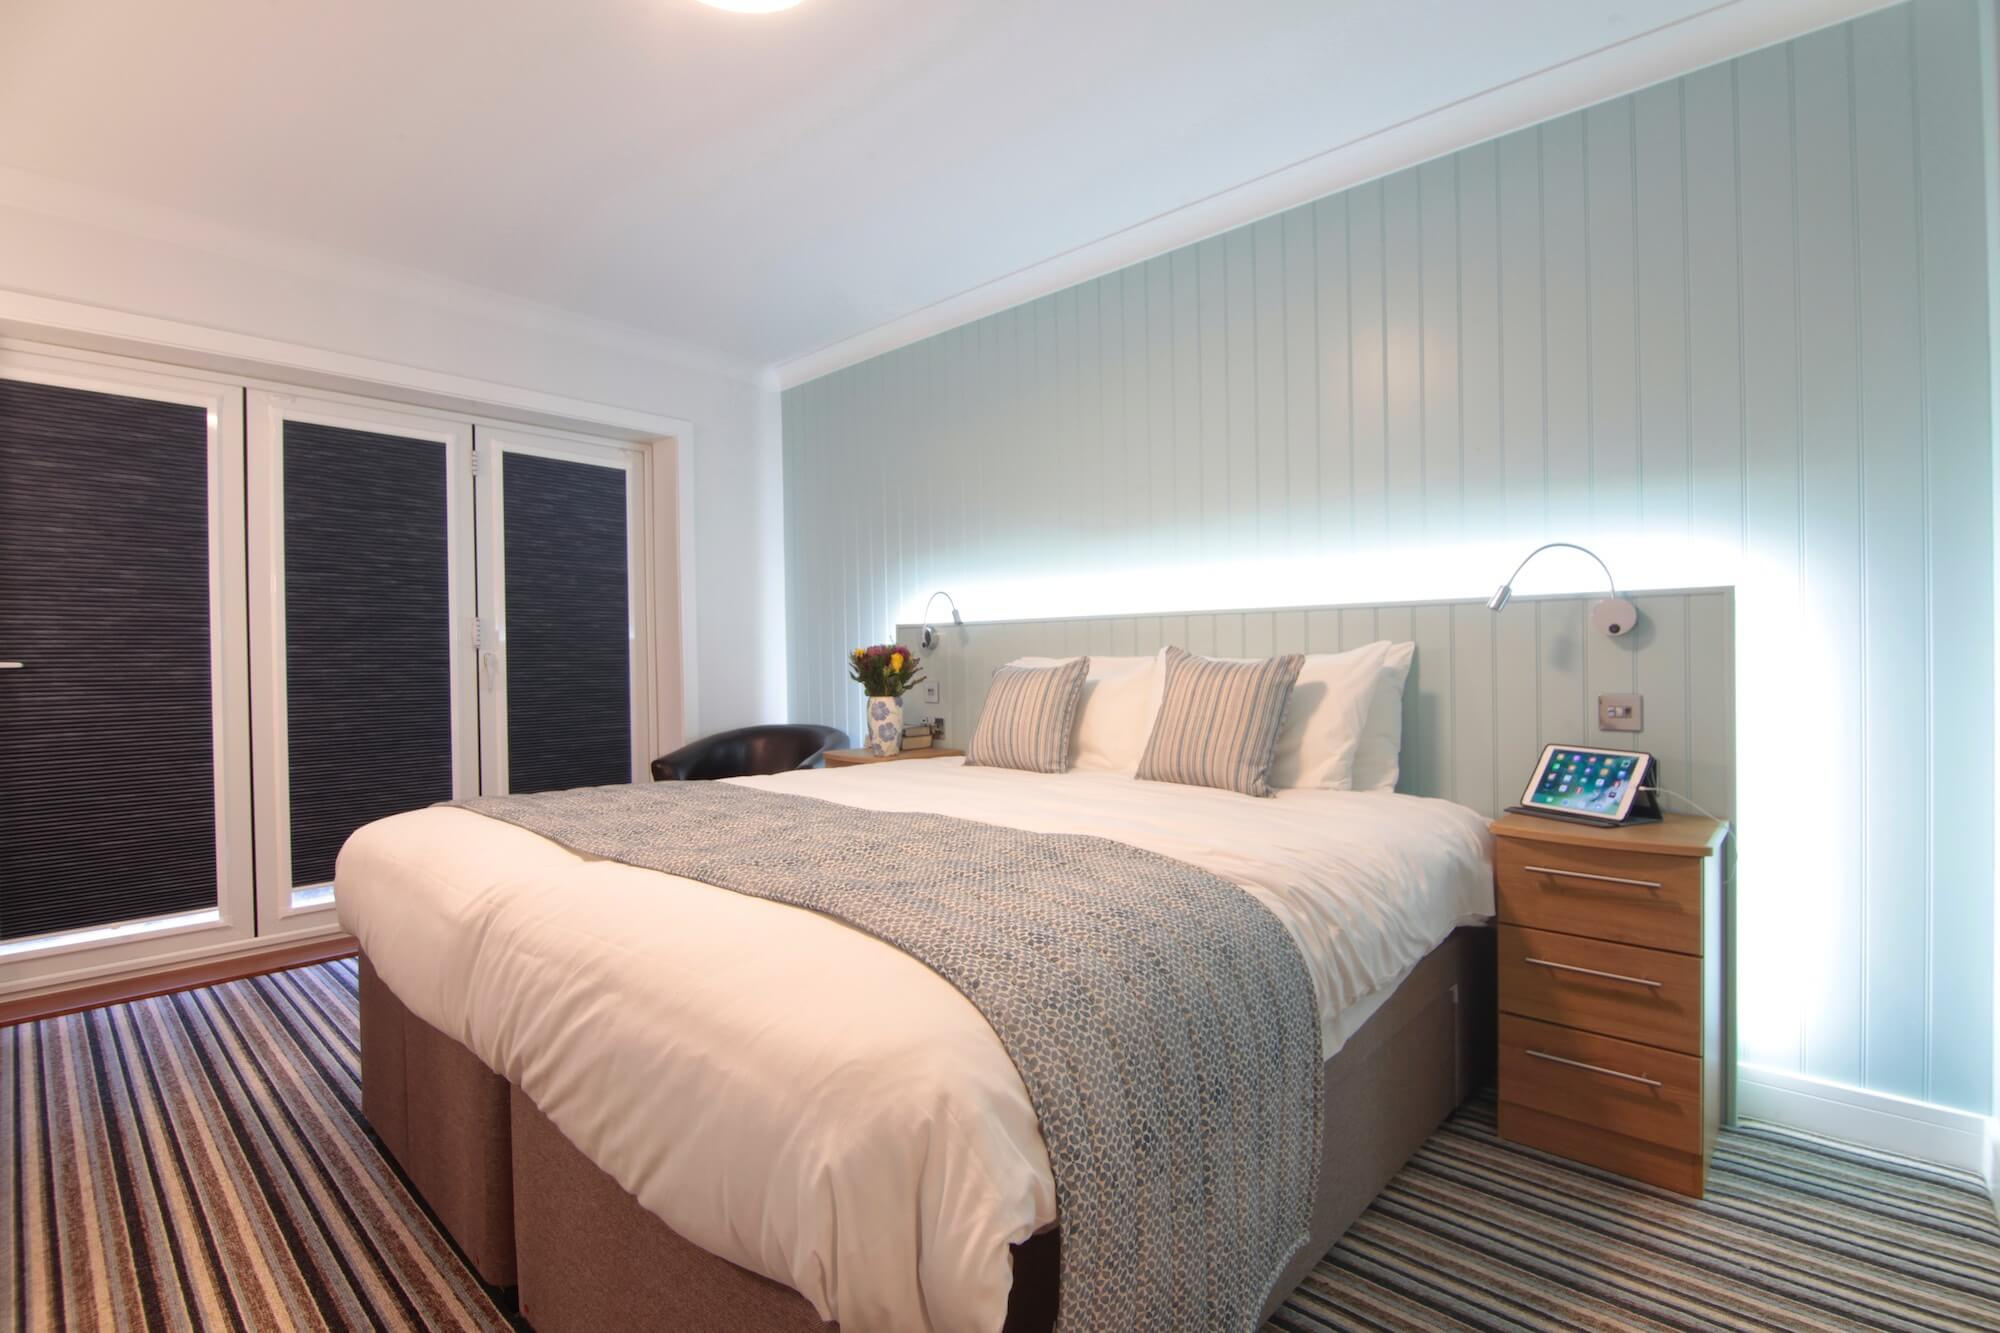 Luccombe Hall Luxury and Contemporary Hotel Accommodation, Isle of Wight